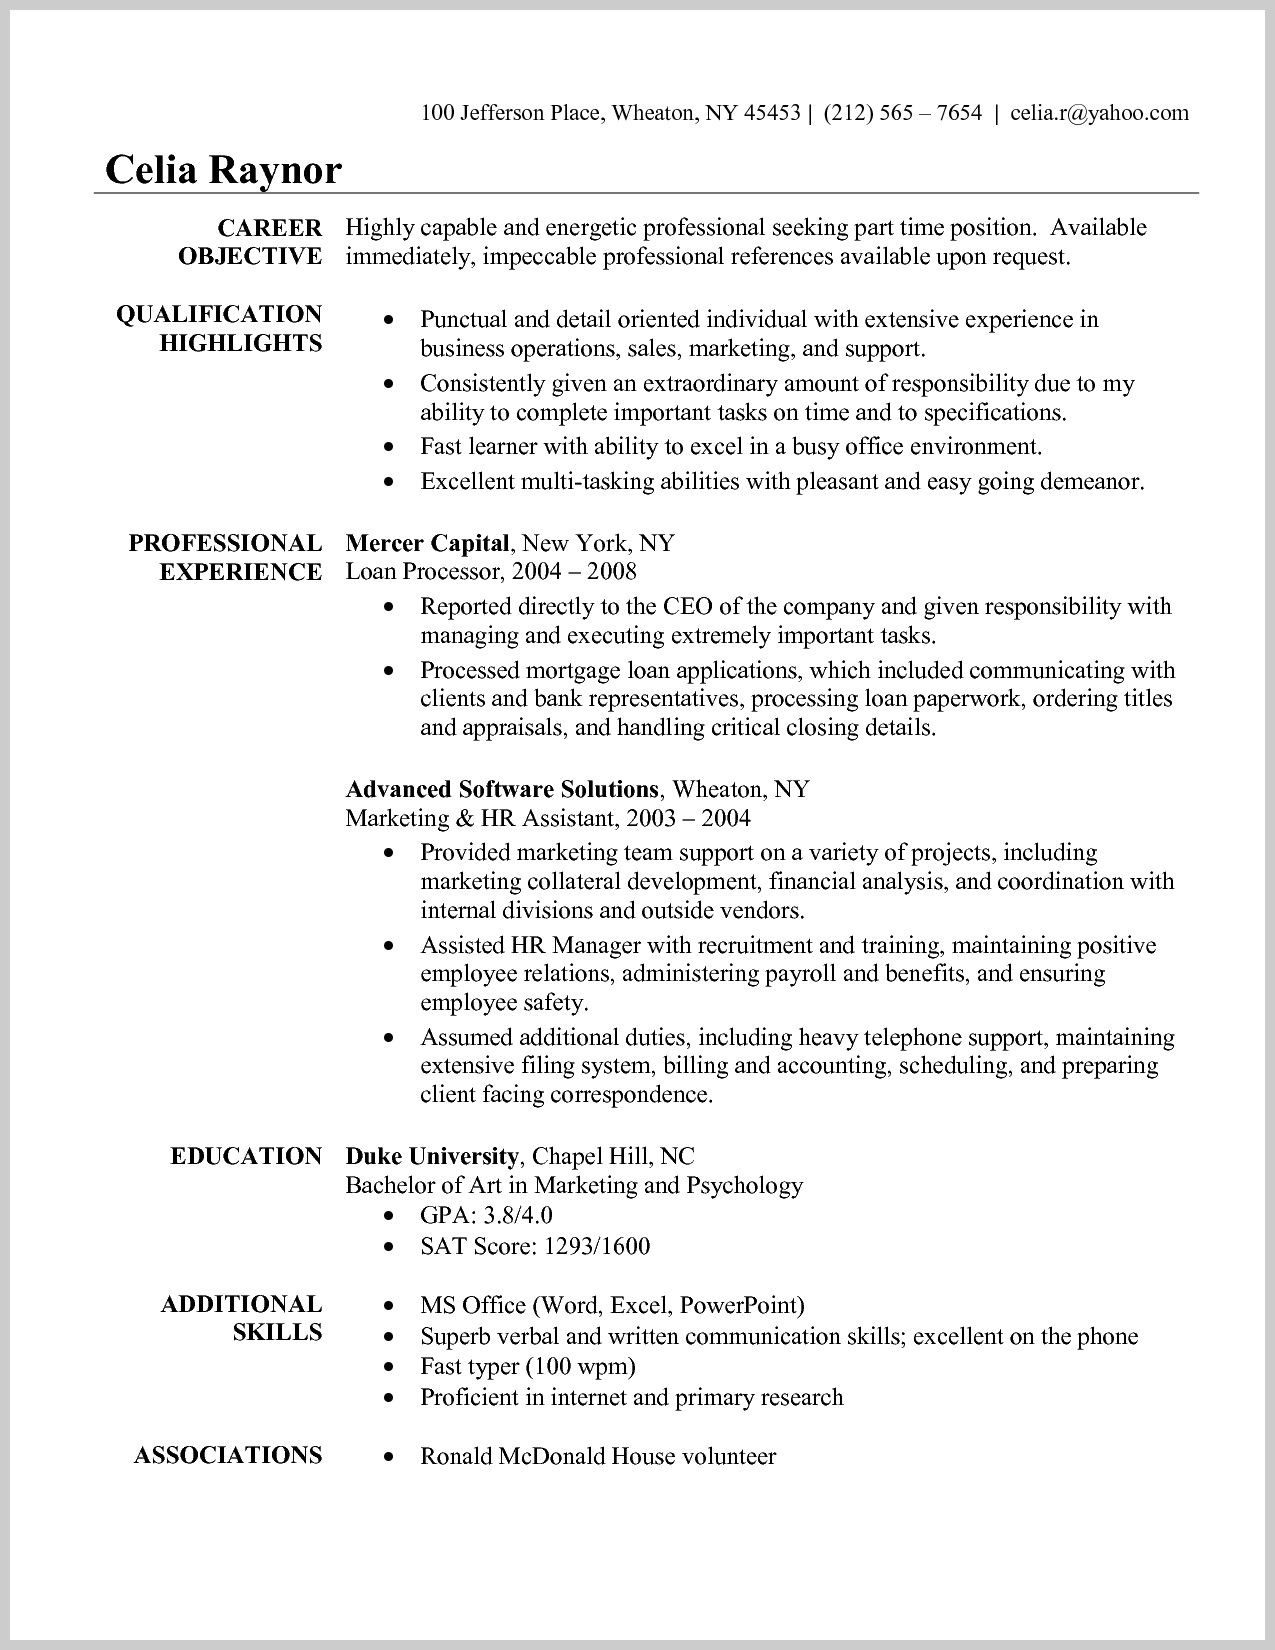 Resume Examples Quick Learner Examples Learner Quick Resume Resumeexamples Administrative Assistant Resume Resume Objective Resume Objective Examples